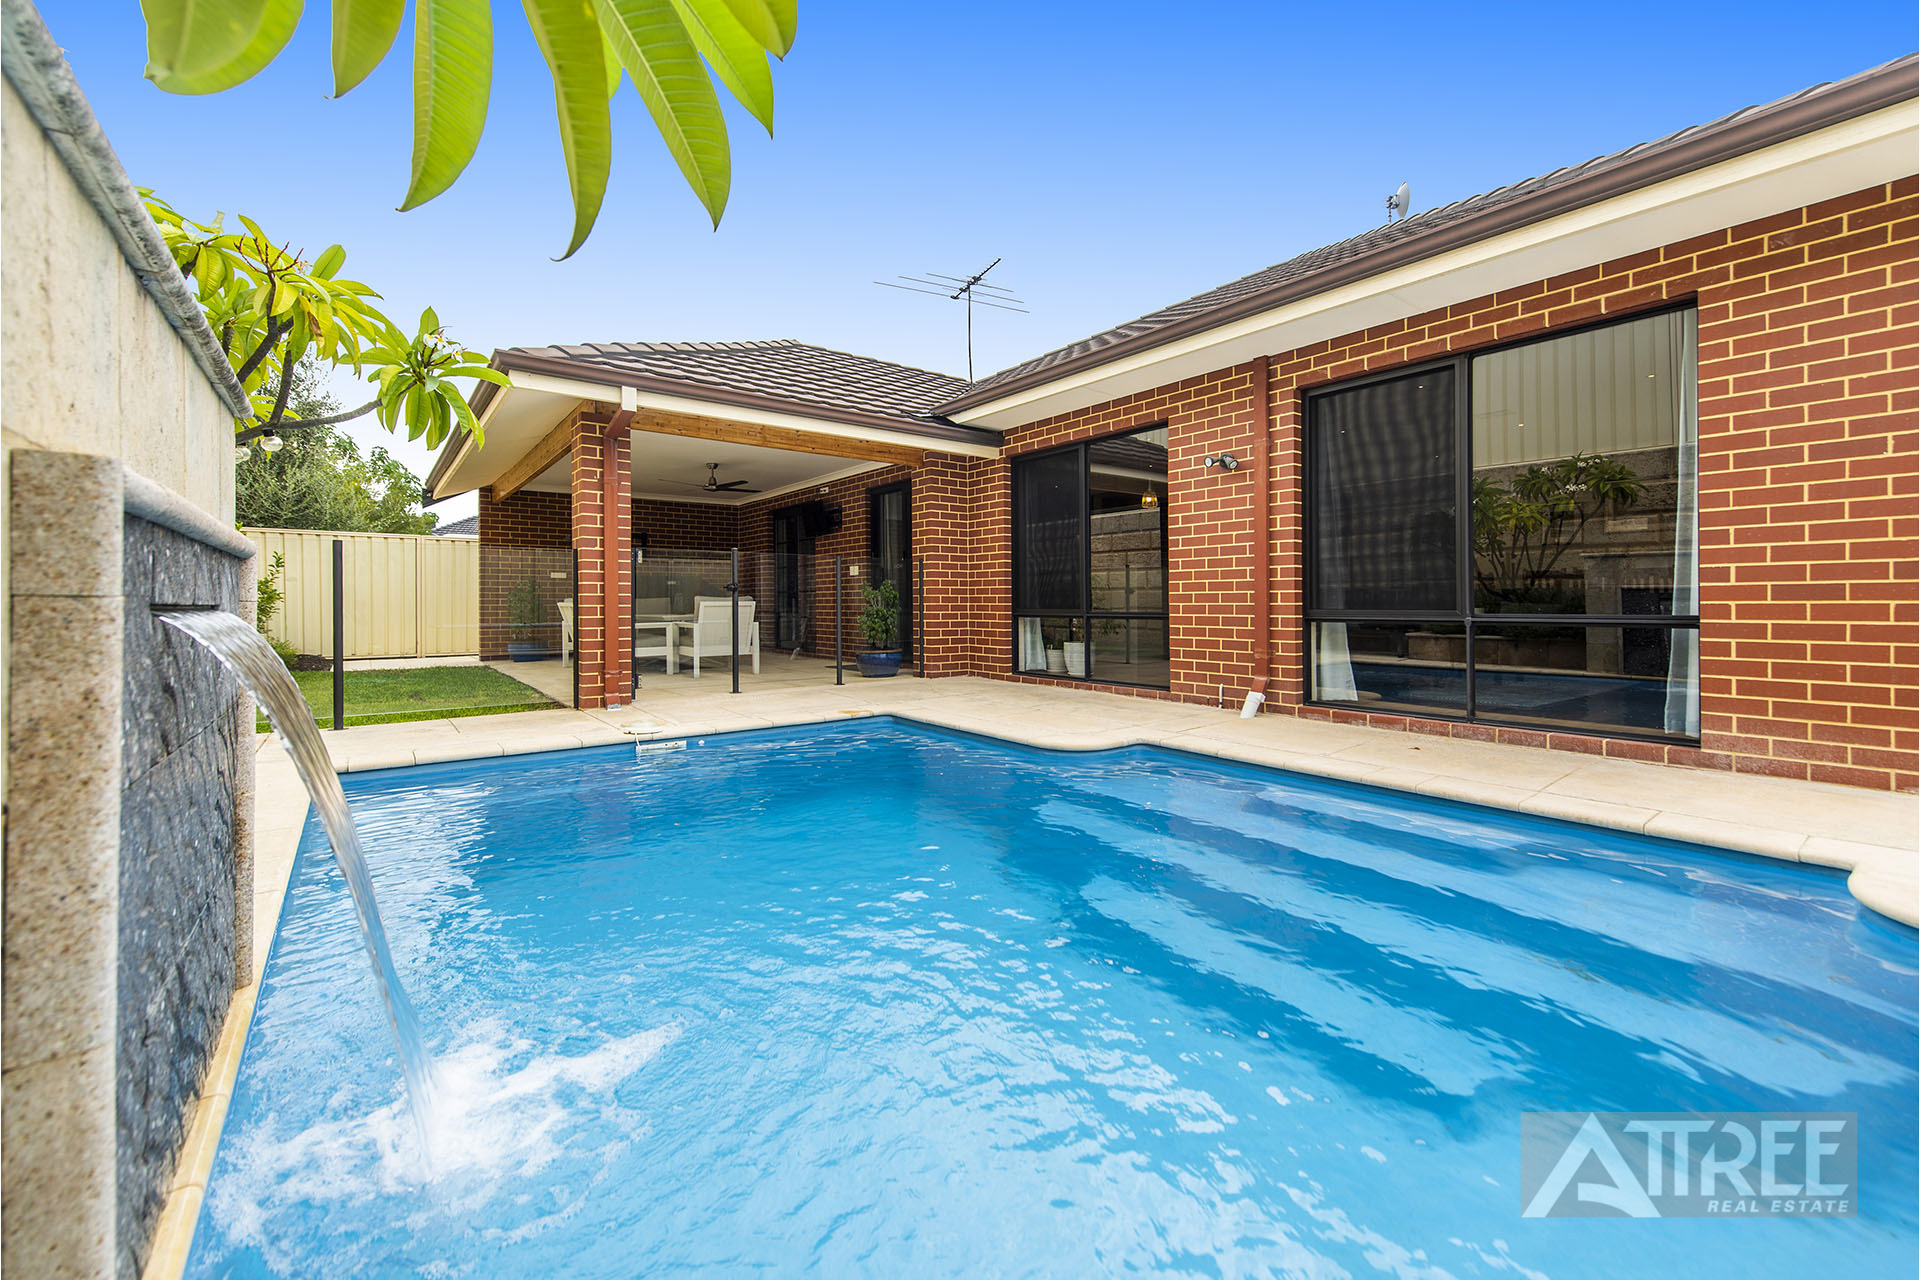 Property for sale in CANNING VALE, 7 Tipperary Bend : Attree Real Estate